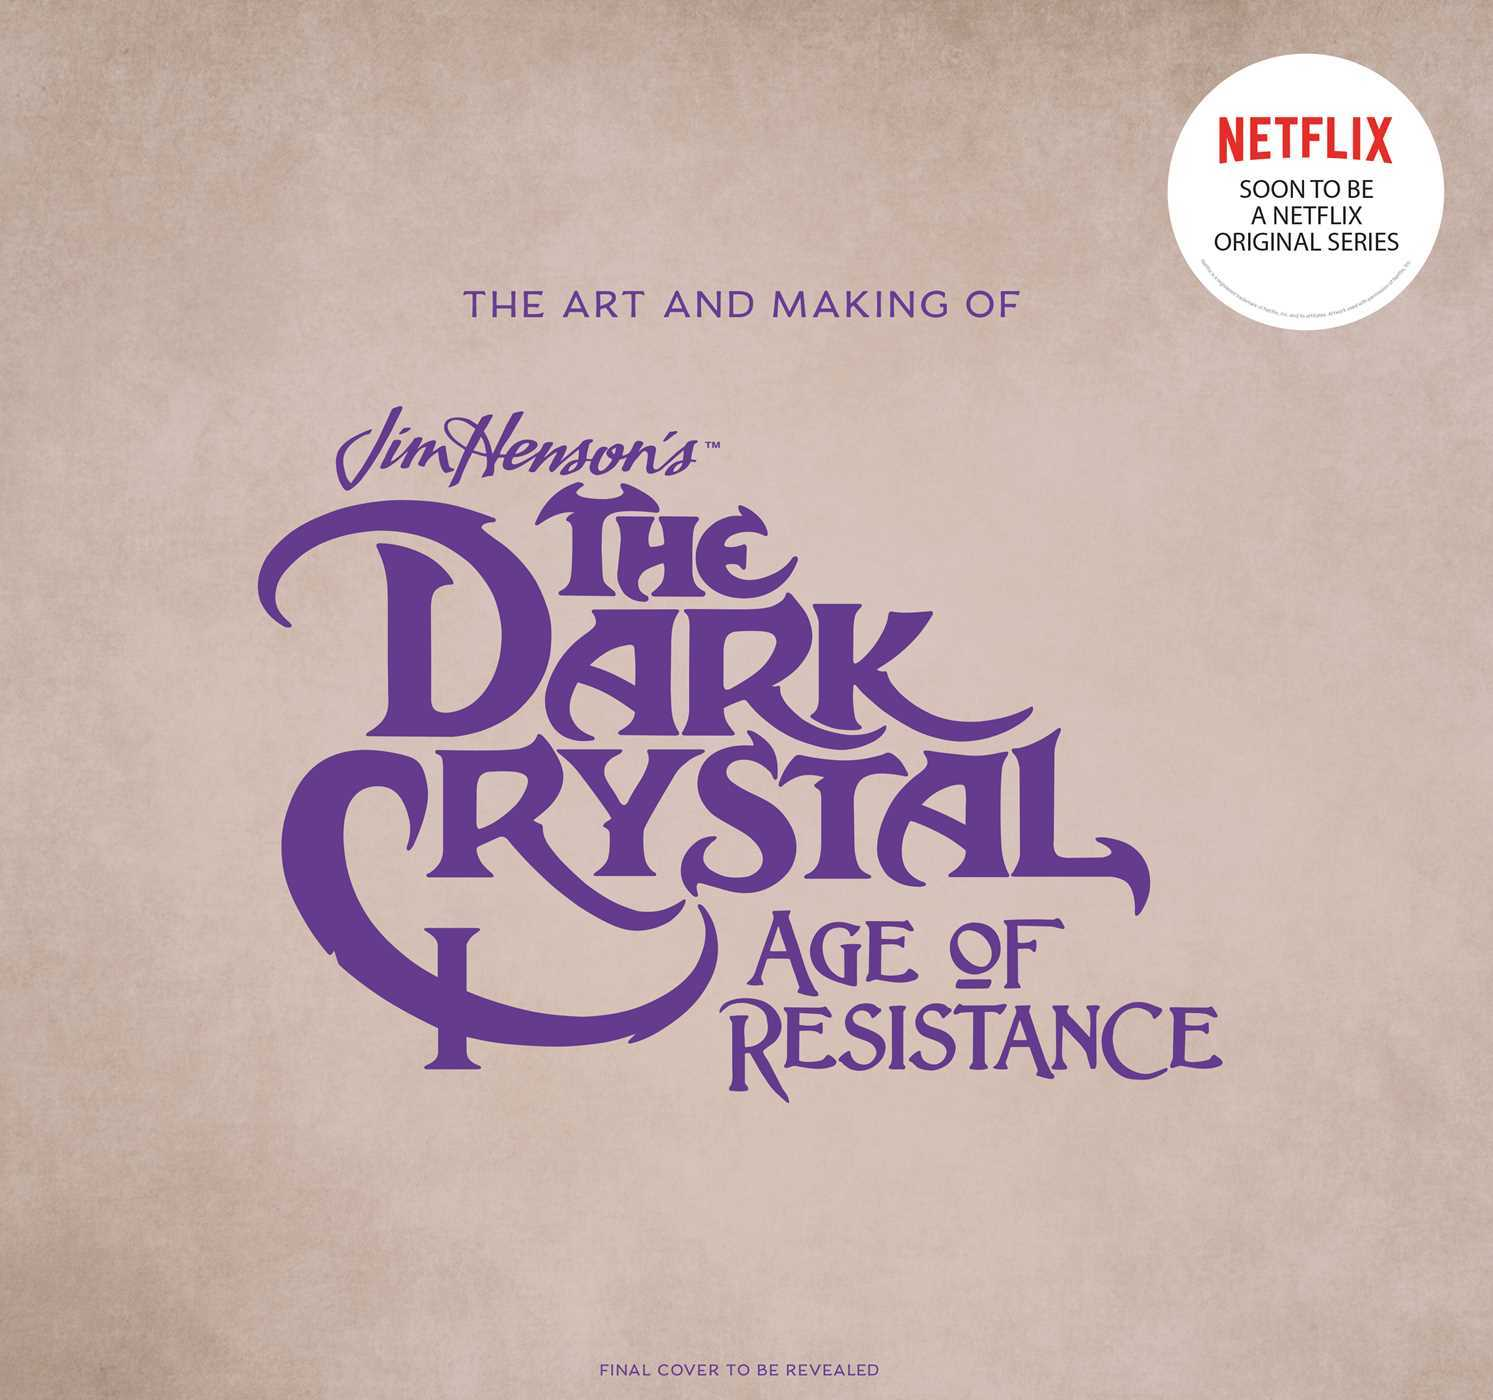 The The Art and Making of The Dark Crystal: Age of Resistance